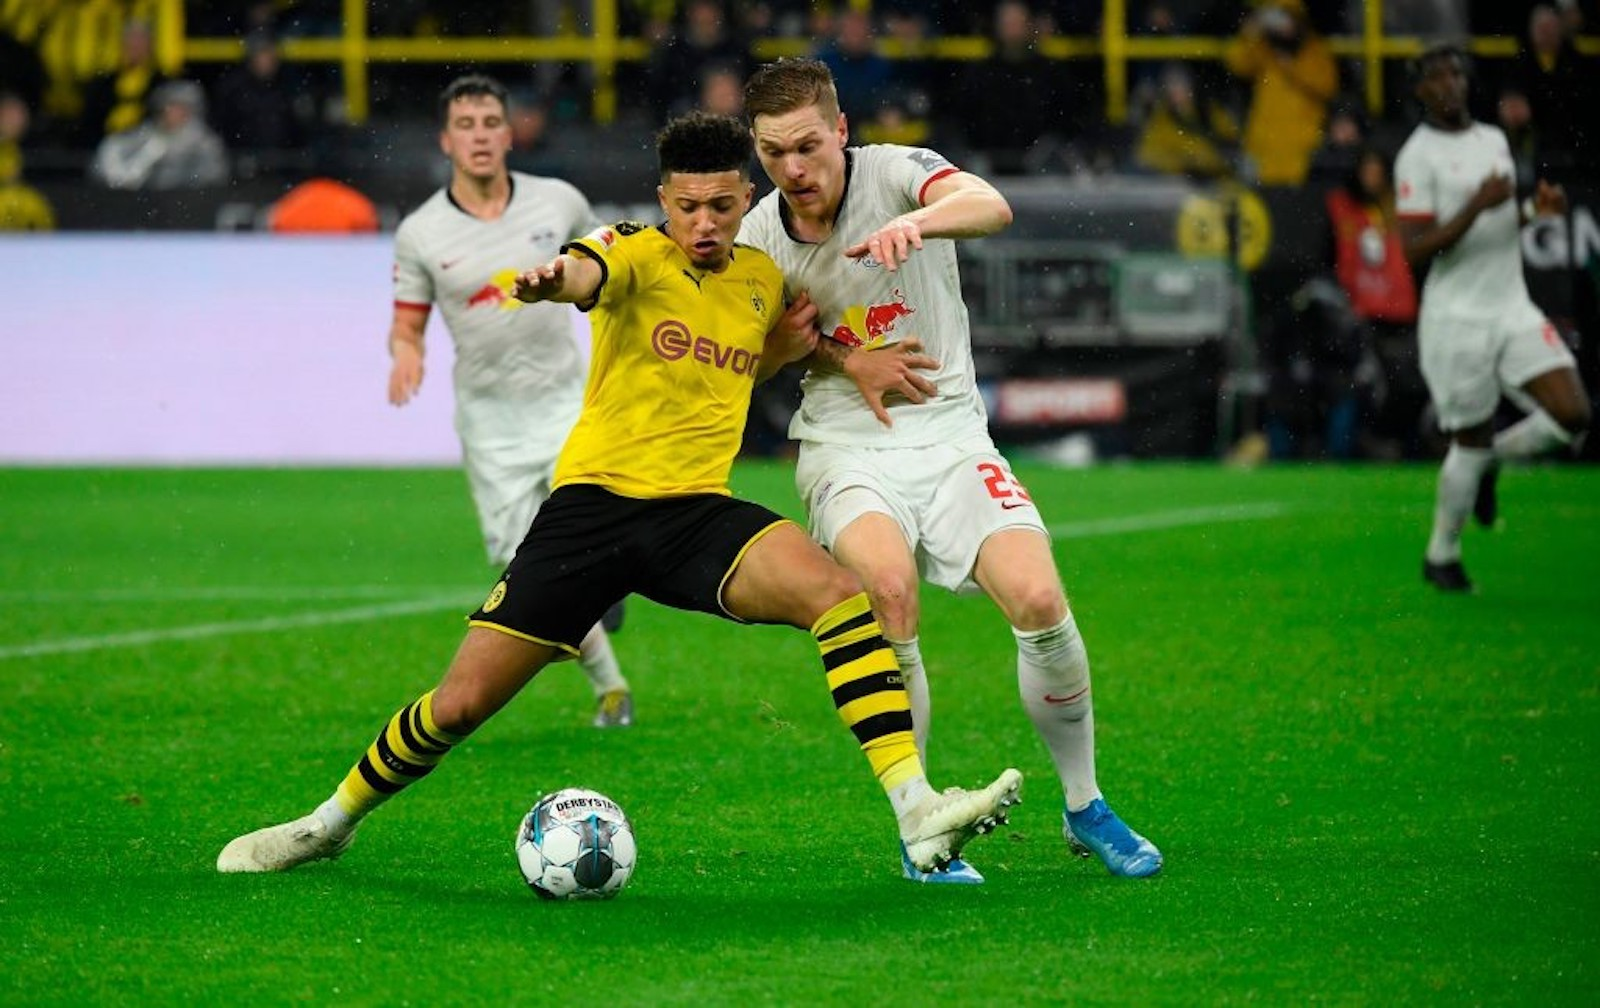 Manchester United encouraged to make move for Jadon Sancho